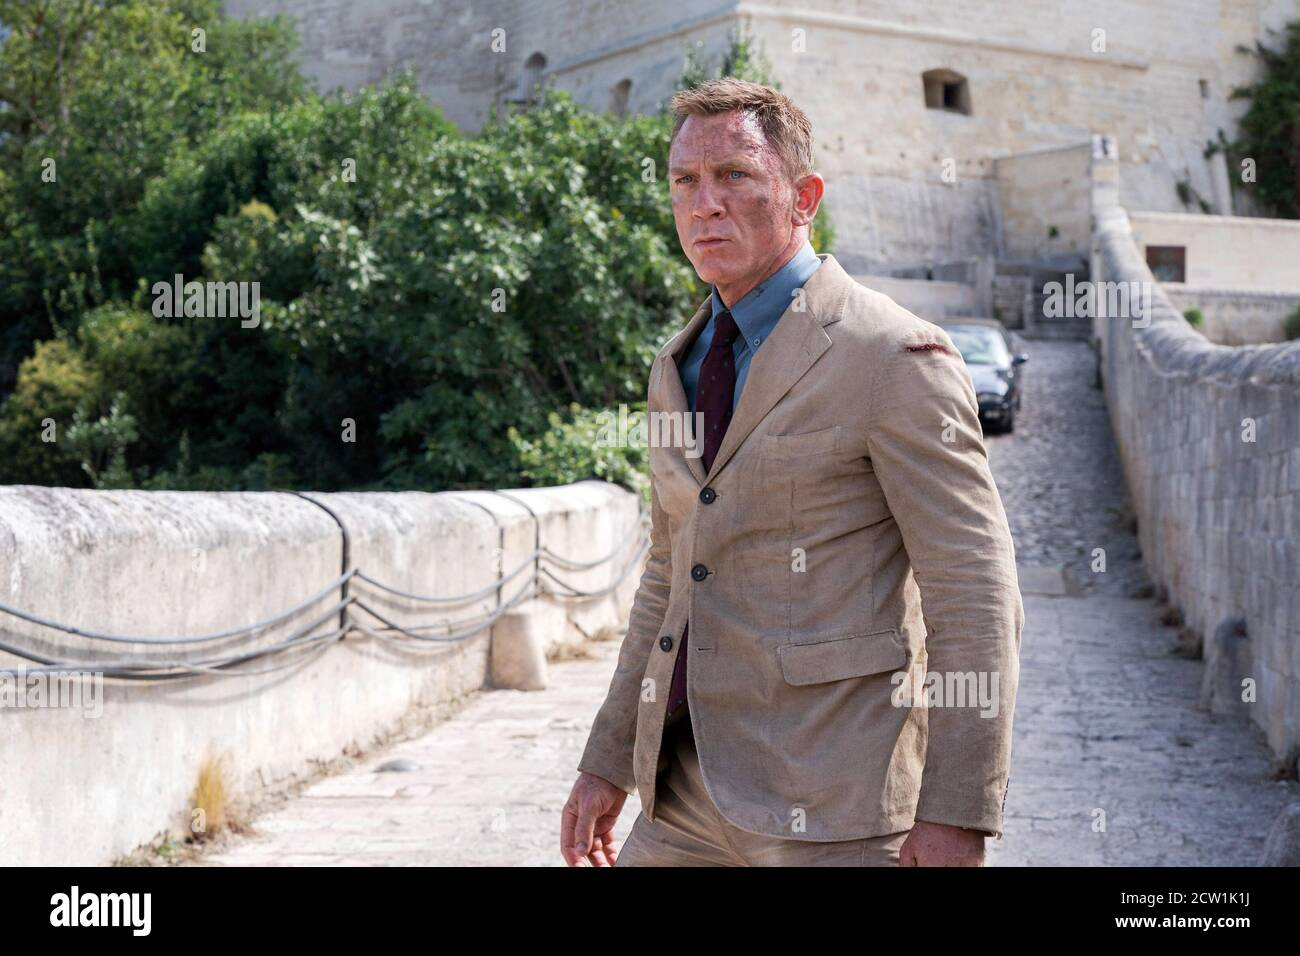 UK. Daniel Craig in the ©Metro-Goldwyn-Mayer new movie: No Time to Die (2020).  Plot: Bond has left active service. His peace is short-lived when his old friend Felix Leiter from the CIA turns up asking for help, leading Bond onto the trail of a mysterious villain armed with dangerous new technology.  Ref: LMK106-J6765-241013 Supplied by LMKMEDIA. Editorial Only. Landmark Media is not the copyright owner of these Film or TV stills but provides a service only for recognised Media outlets. pictures@lmkmedia.com Stock Photo